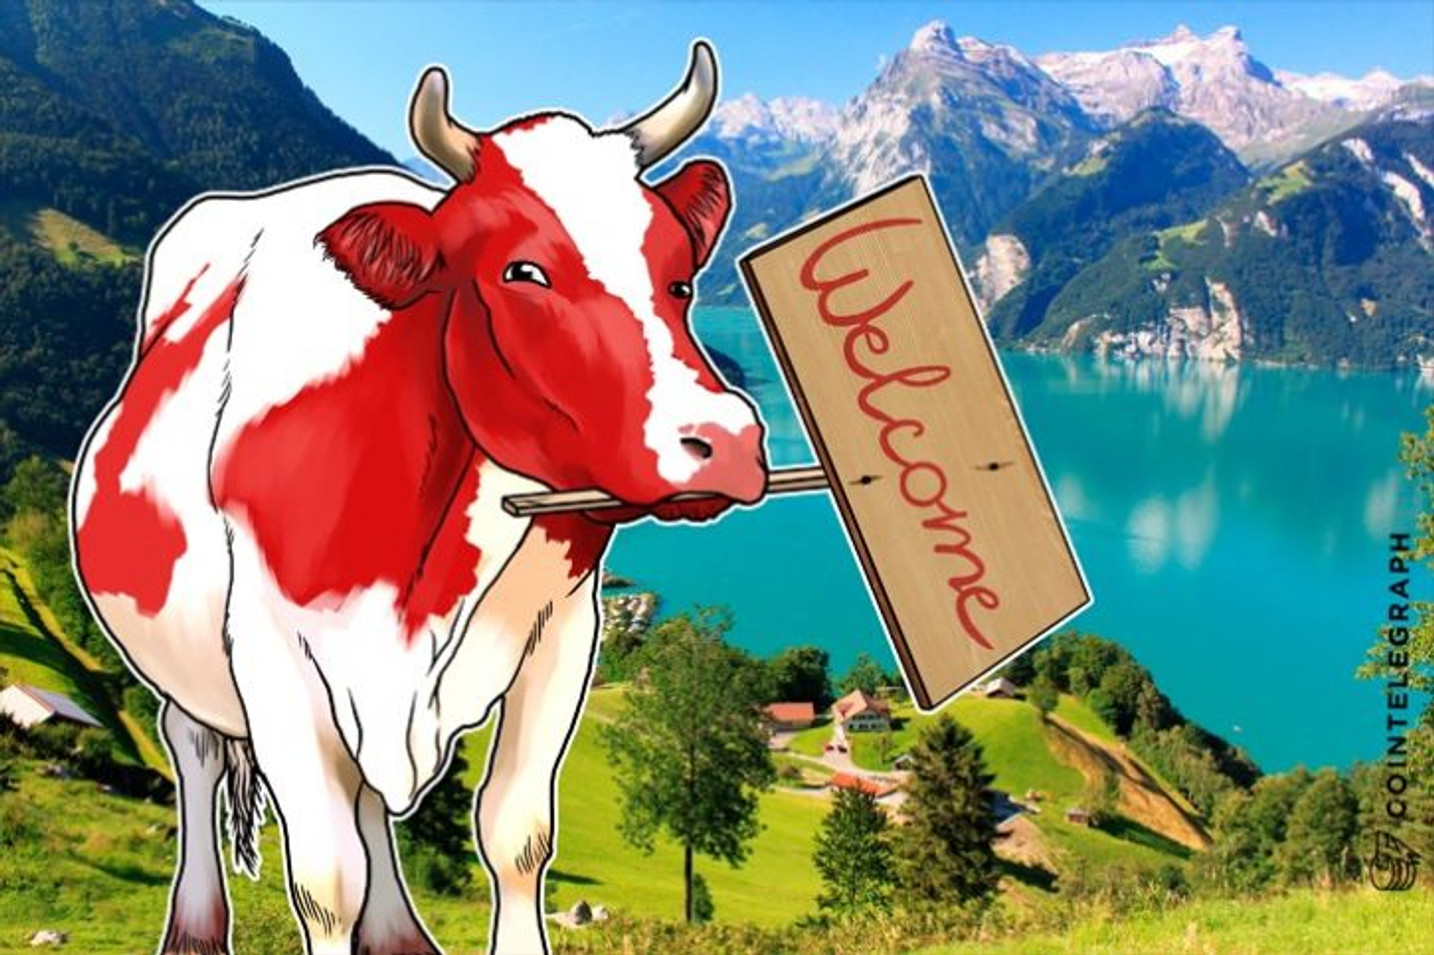 Crypto Valley Startup Takes on Swiss Banking System With Blockchain